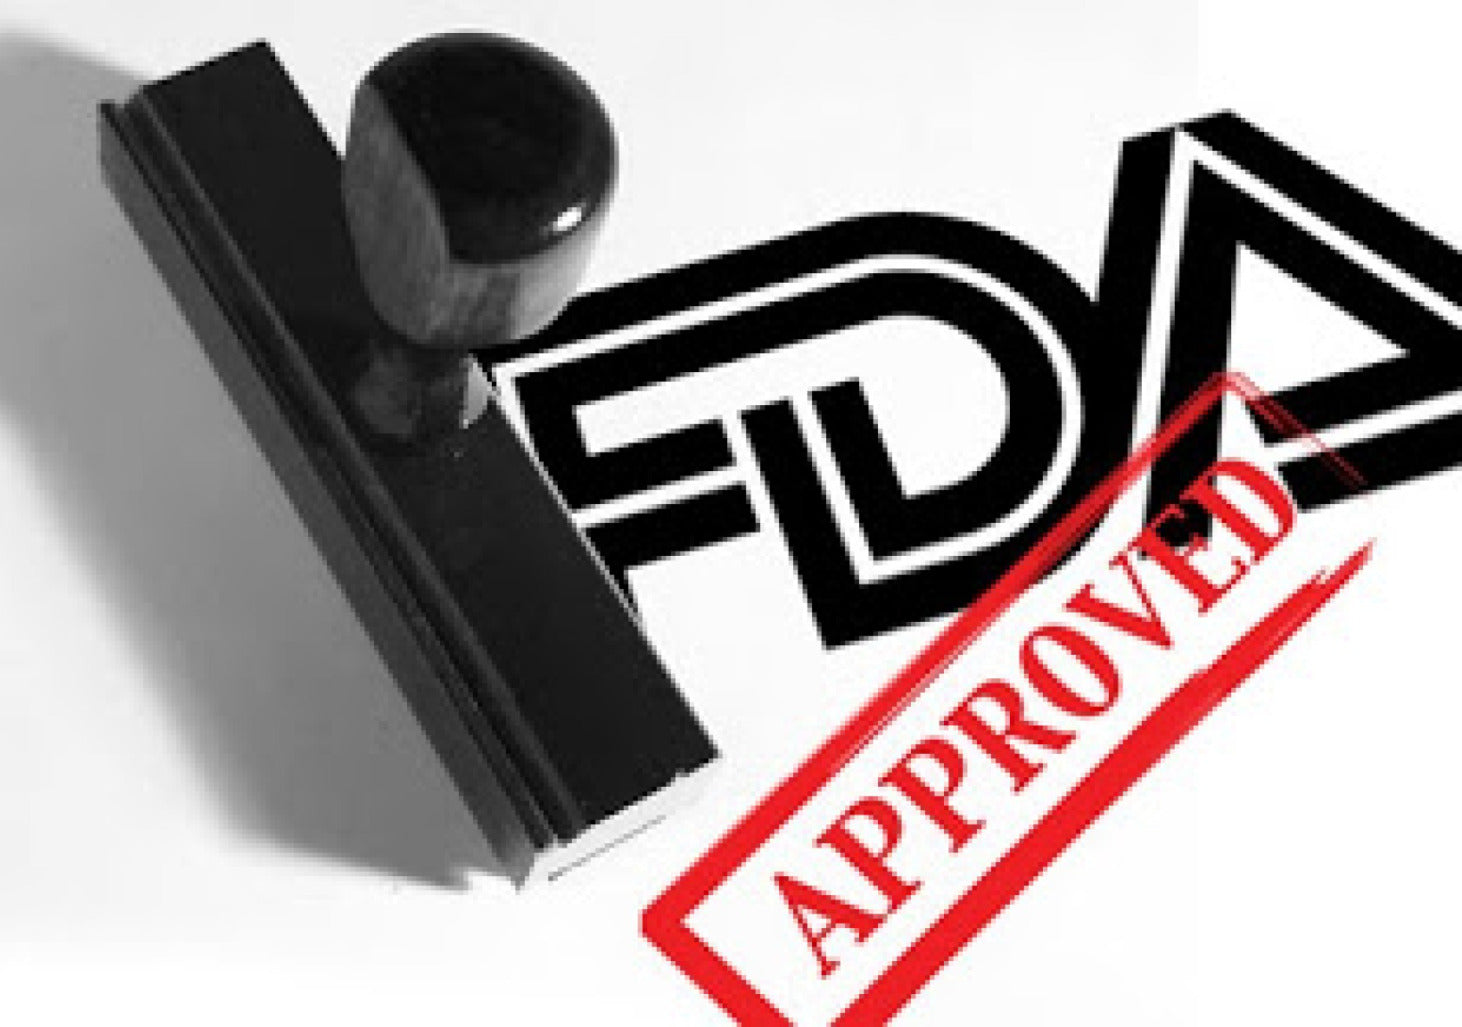 FDA Regulation Means an Even Playing Field